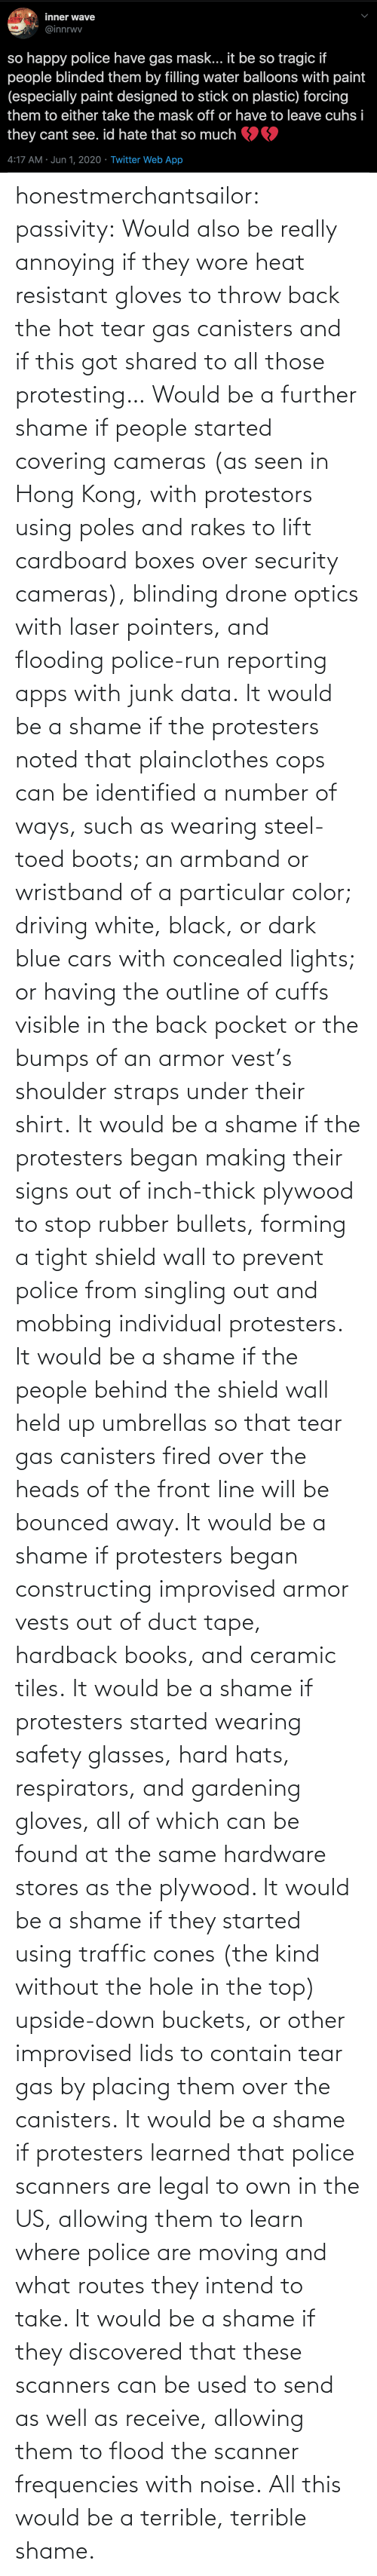 Books, Cars, and Driving: honestmerchantsailor:  passivity: Would also be really annoying if they wore heat resistant gloves to throw back the hot tear gas canisters and if this got shared to all those protesting… Would be a further shame if people started covering cameras (as seen in Hong Kong, with protestors using poles and rakes to lift cardboard boxes over security cameras), blinding drone optics with laser pointers, and flooding police-run reporting apps with junk data. It would be a shame if the protesters noted that plainclothes cops can be identified a number of ways, such as wearing steel-toed boots; an armband or wristband of a particular color; driving white, black, or dark blue cars with concealed lights; or having the outline of cuffs visible in the back pocket or the bumps of an armor vest's shoulder straps under their shirt. It would be a shame if the protesters began making their signs out of inch-thick plywood to stop rubber bullets, forming a tight shield wall to prevent police from singling out and mobbing individual protesters. It would be a shame if the people behind the shield wall held up umbrellas so that tear gas canisters fired over the heads of the front line will be bounced away. It would be a shame if protesters began constructing improvised armor vests out of duct tape, hardback books, and ceramic tiles. It would be a shame if protesters started wearing safety glasses, hard hats, respirators, and gardening gloves, all of which can be found at the same hardware stores as the plywood. It would be a shame if they started using traffic cones (the kind without the hole in the top) upside-down buckets, or other improvised lids to contain tear gas by placing them over the canisters. It would be a shame if protesters learned that police scanners are legal to own in the US, allowing them to learn where police are moving and what routes they intend to take. It would be a shame if they discovered that these scanners can be used to send as well as receive, allowing them to flood the scanner frequencies with noise. All this would be a terrible, terrible shame.